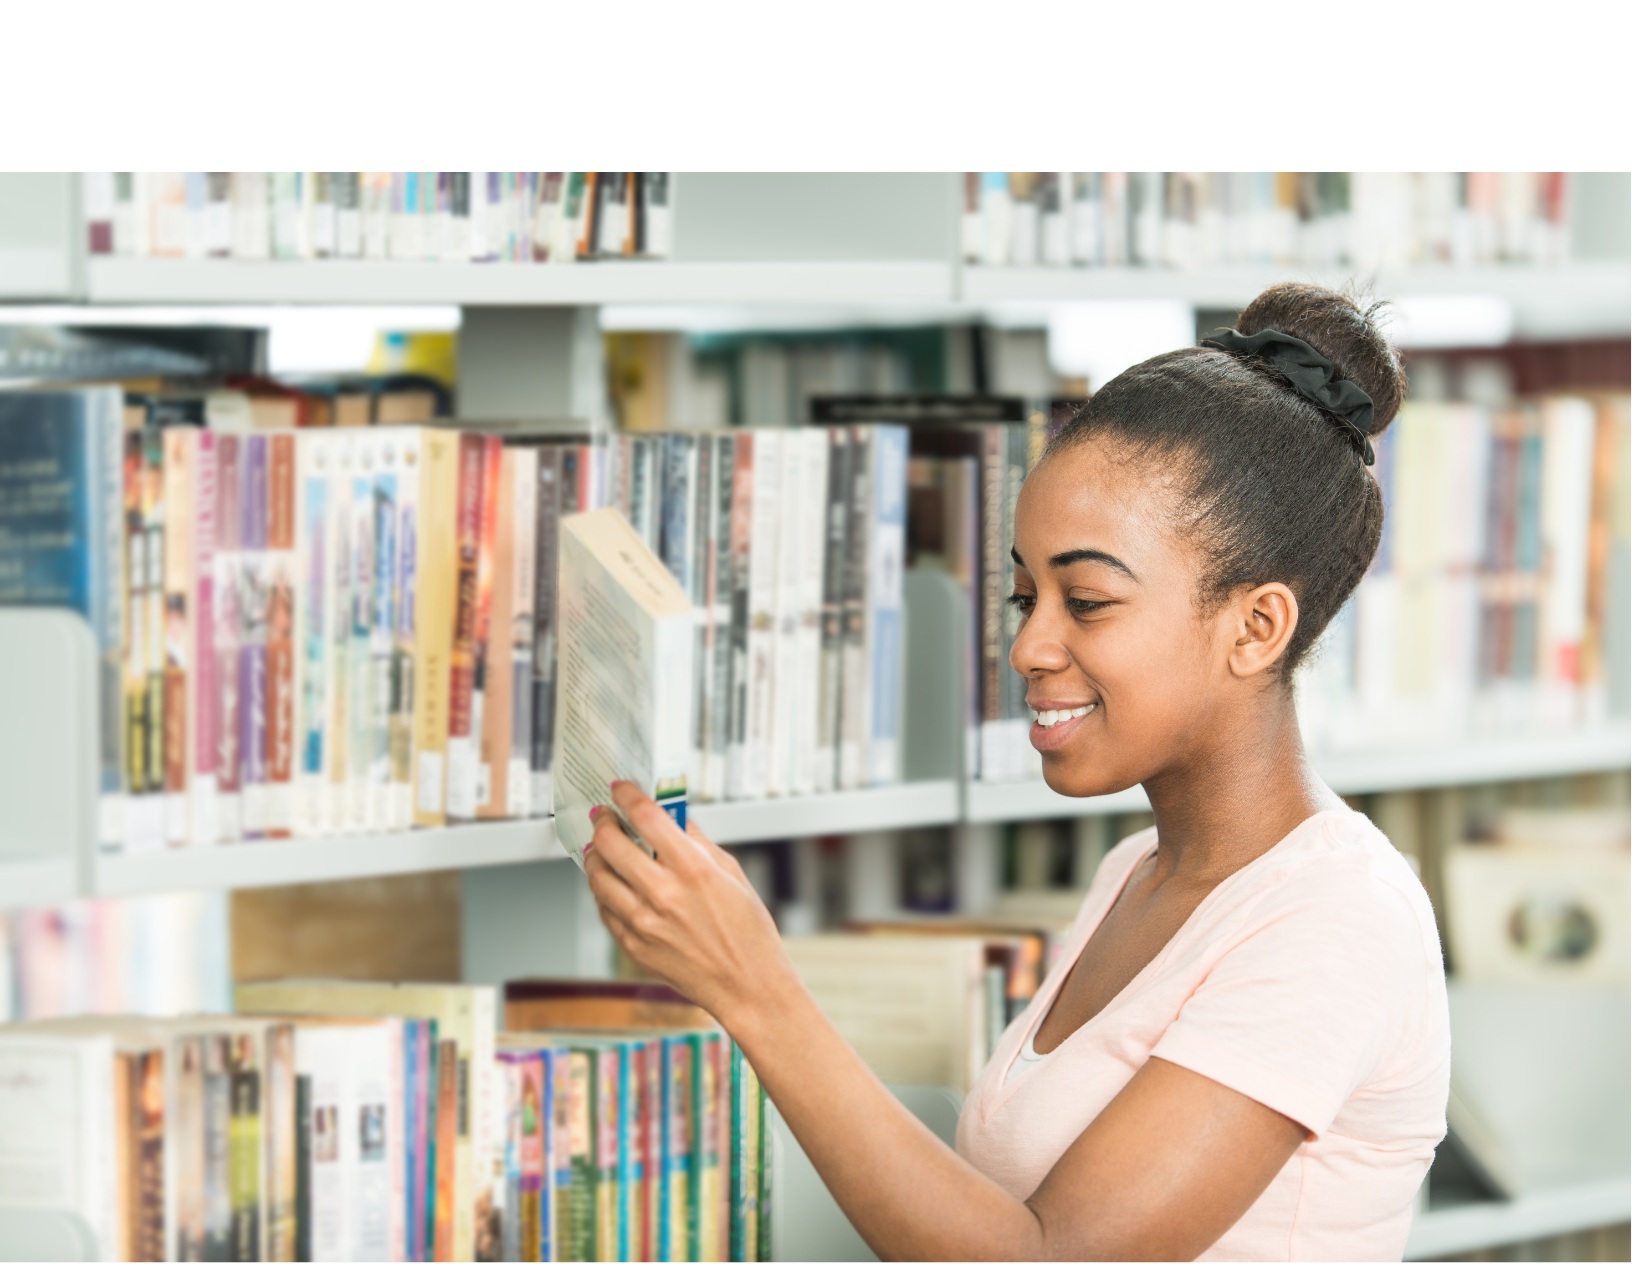 Young girl browsing the library shelf and selecting a book